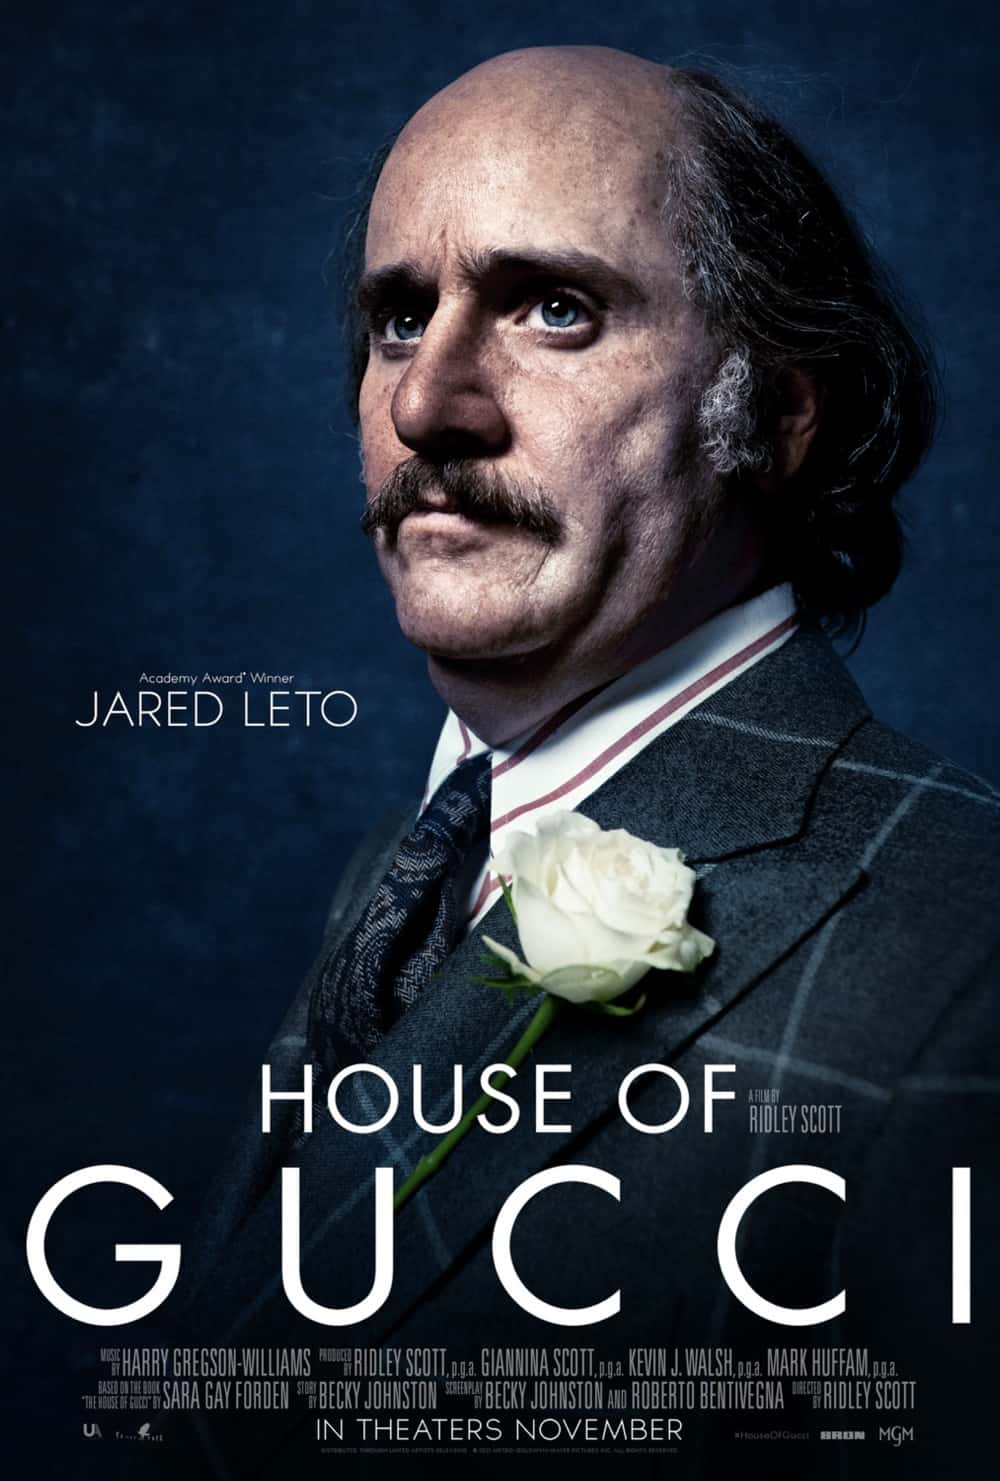 House Of Gucci Jared Leto Character Poster